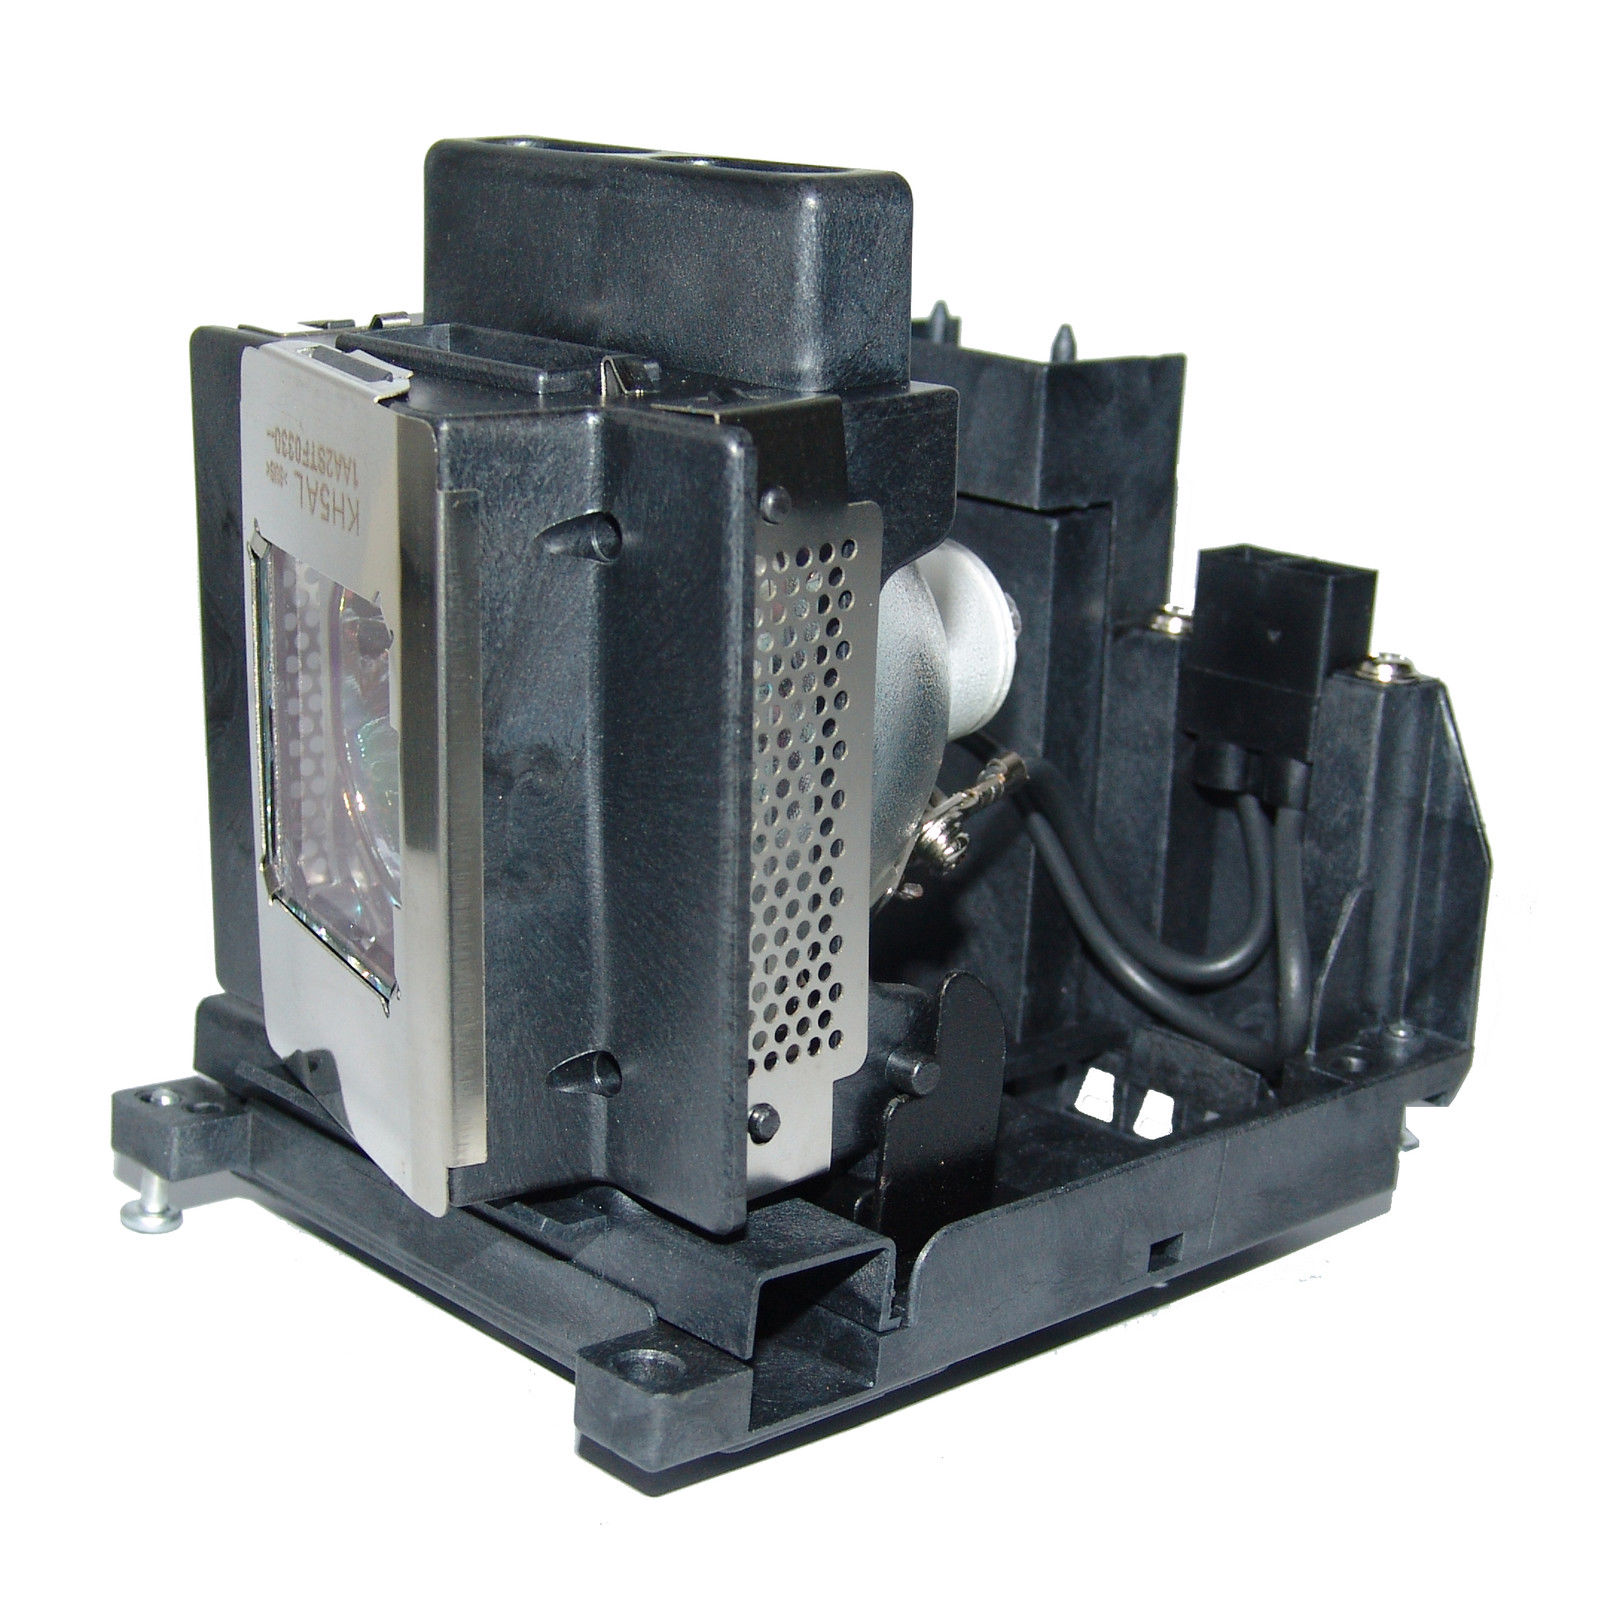 Projector Lamp Bulb POA-LMP145 LMP45 610-350-6814 for SANYO PDG-DHT8000 PDG-DHT8000L with housing